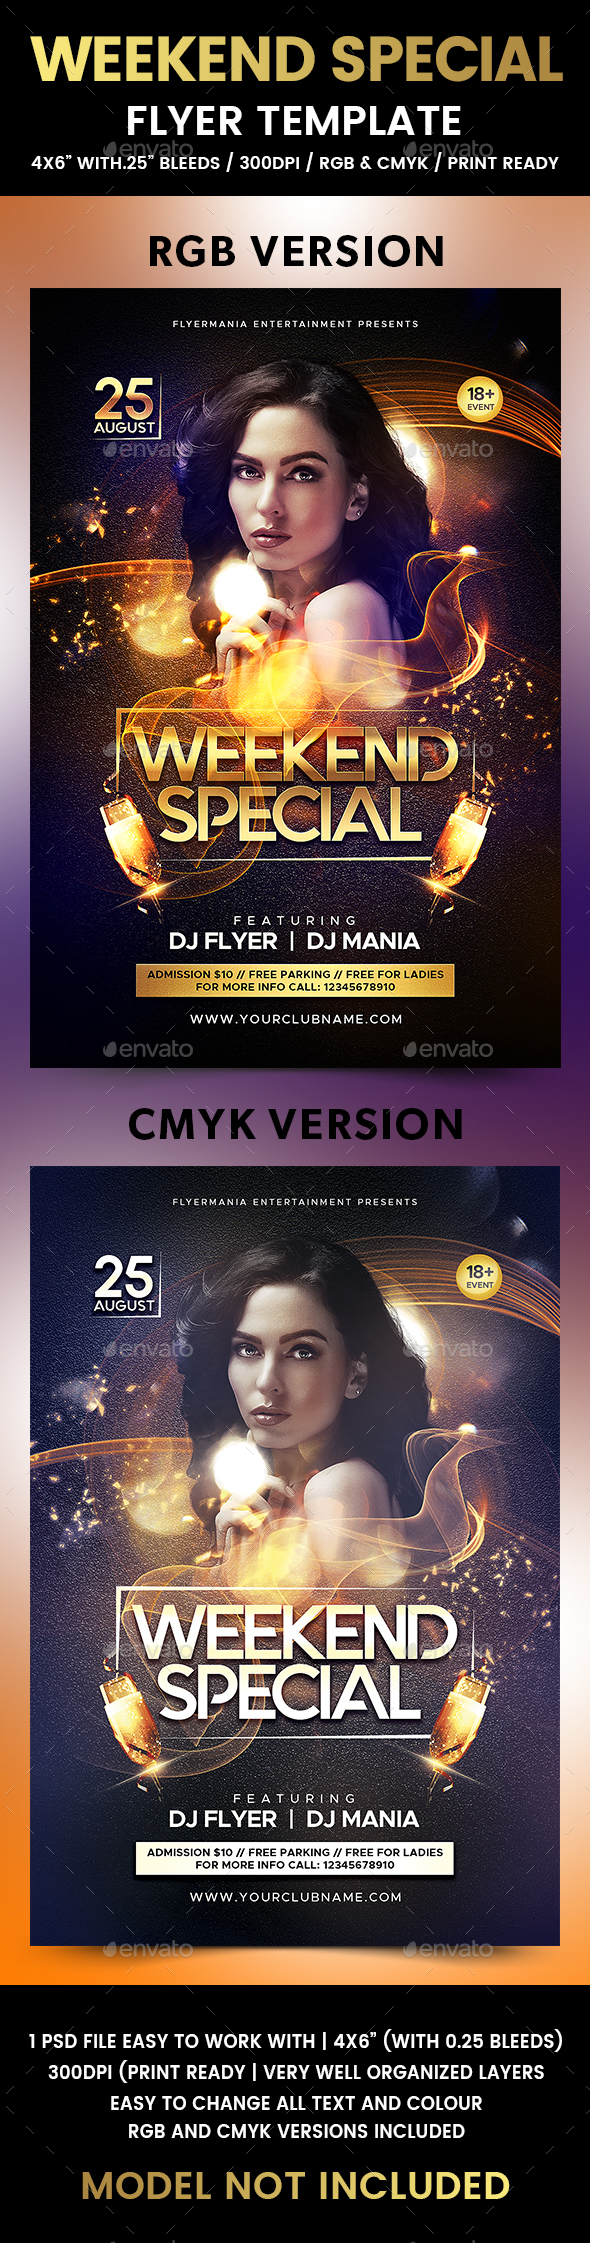 Weekend Special Flyer Template - Flyers Print Templates